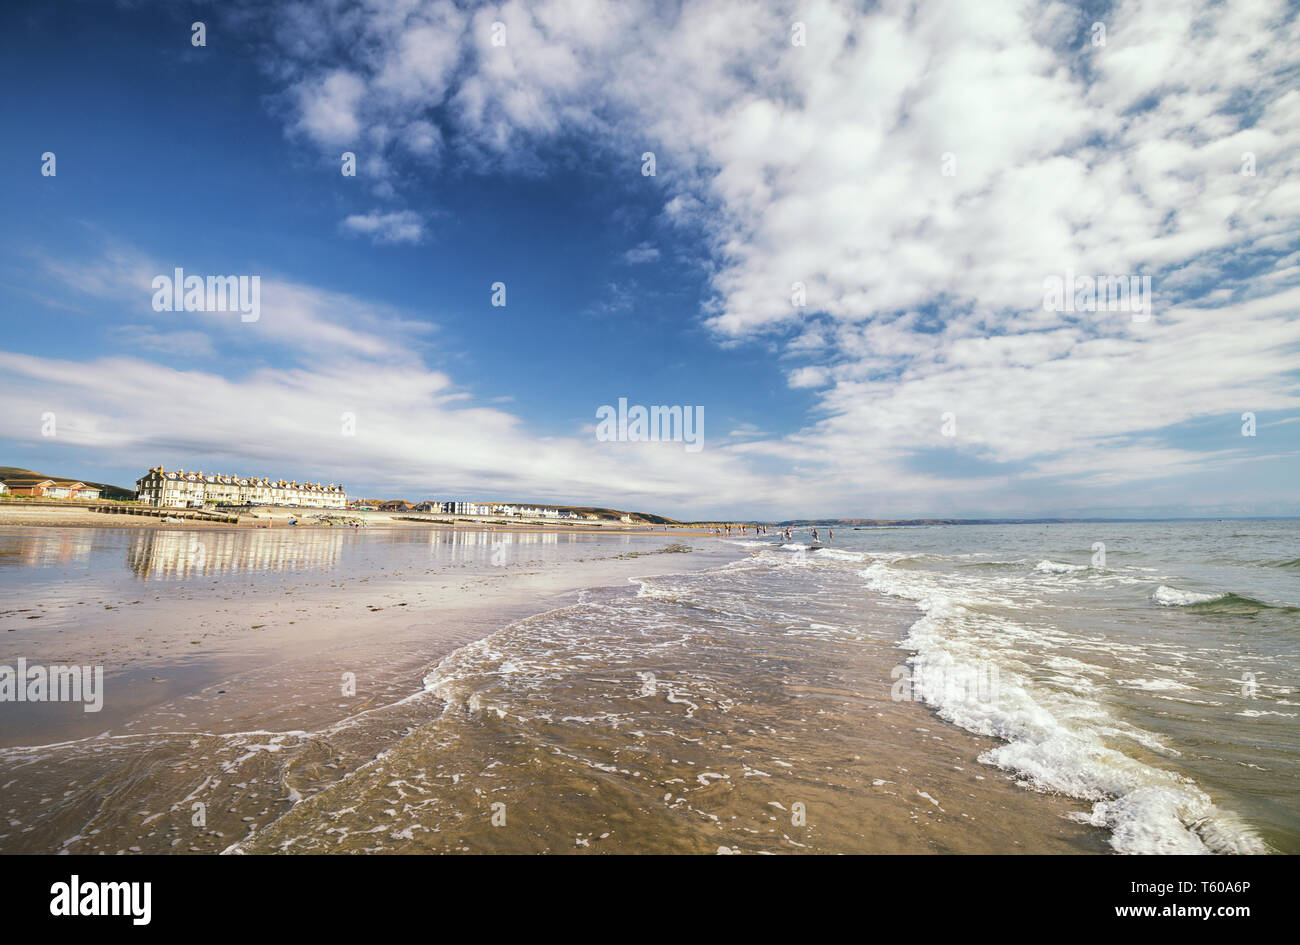 Sea waves washing onto scenic beach at bright summer day. Tywyn in Mid Wales, United Kingdom - Stock Image